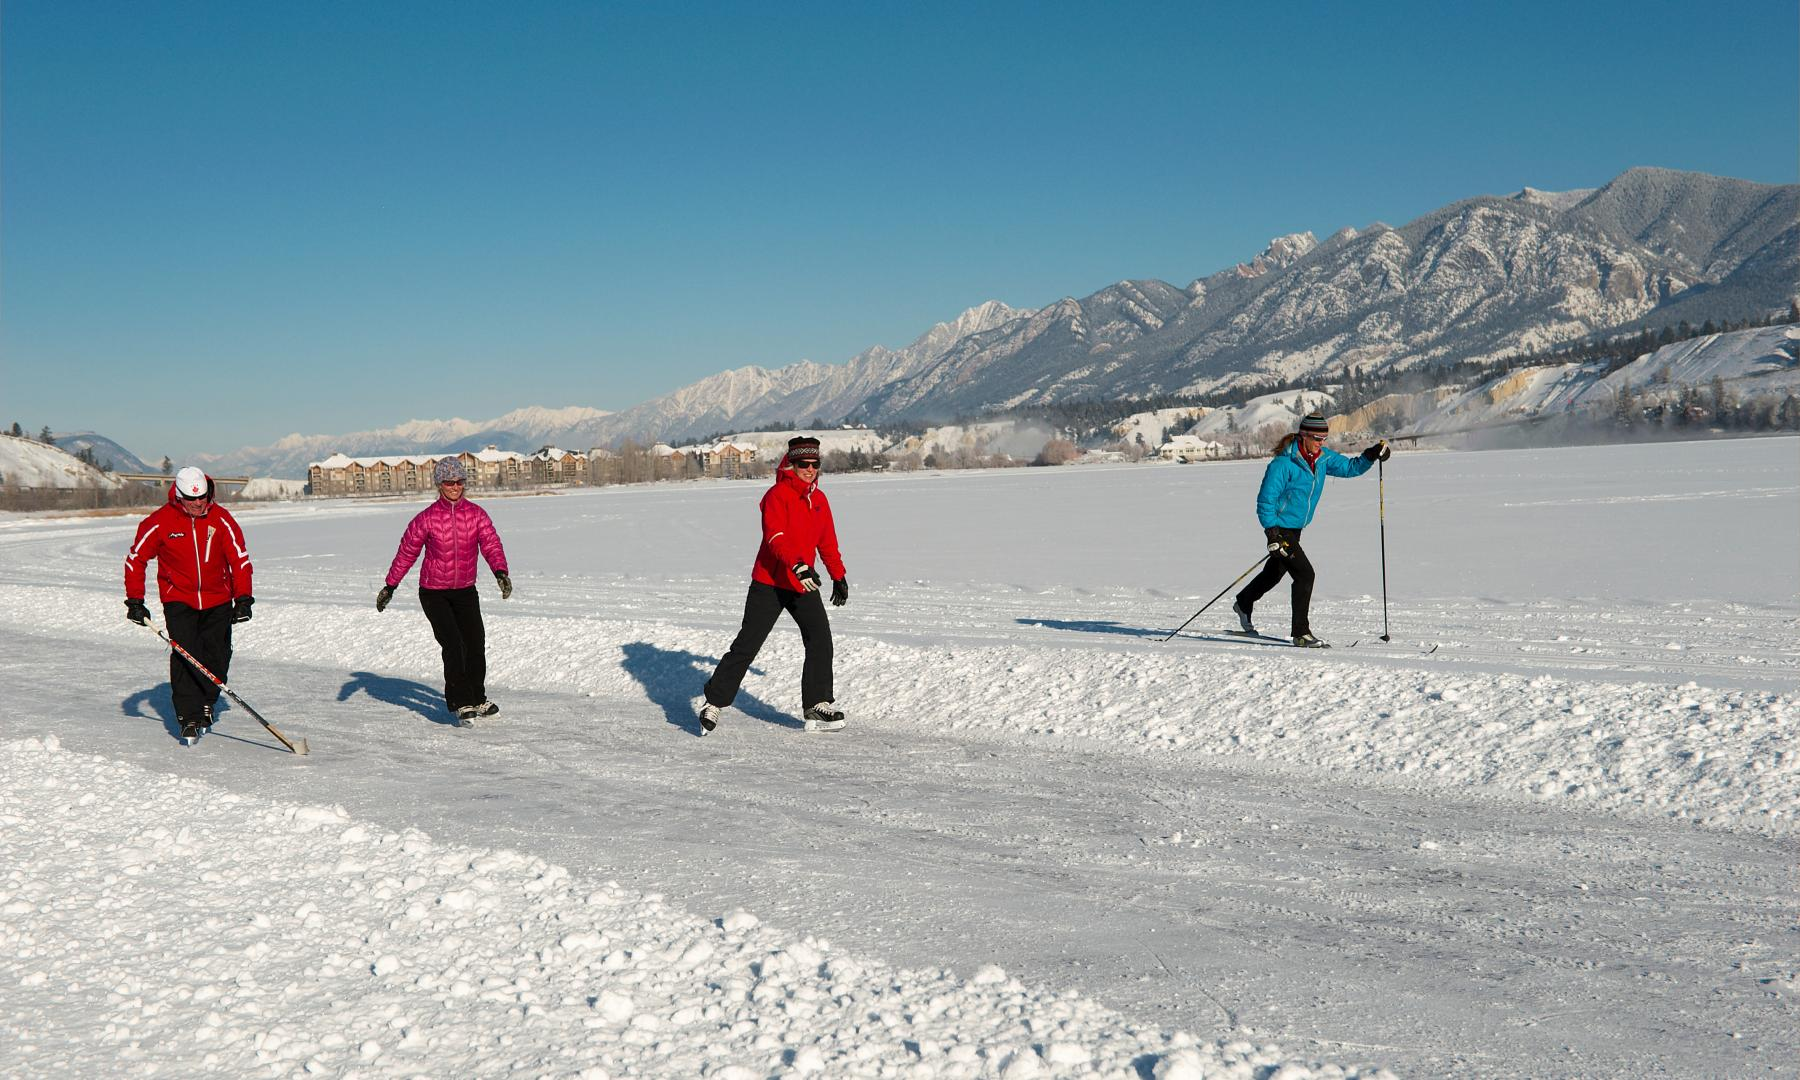 group skating xc